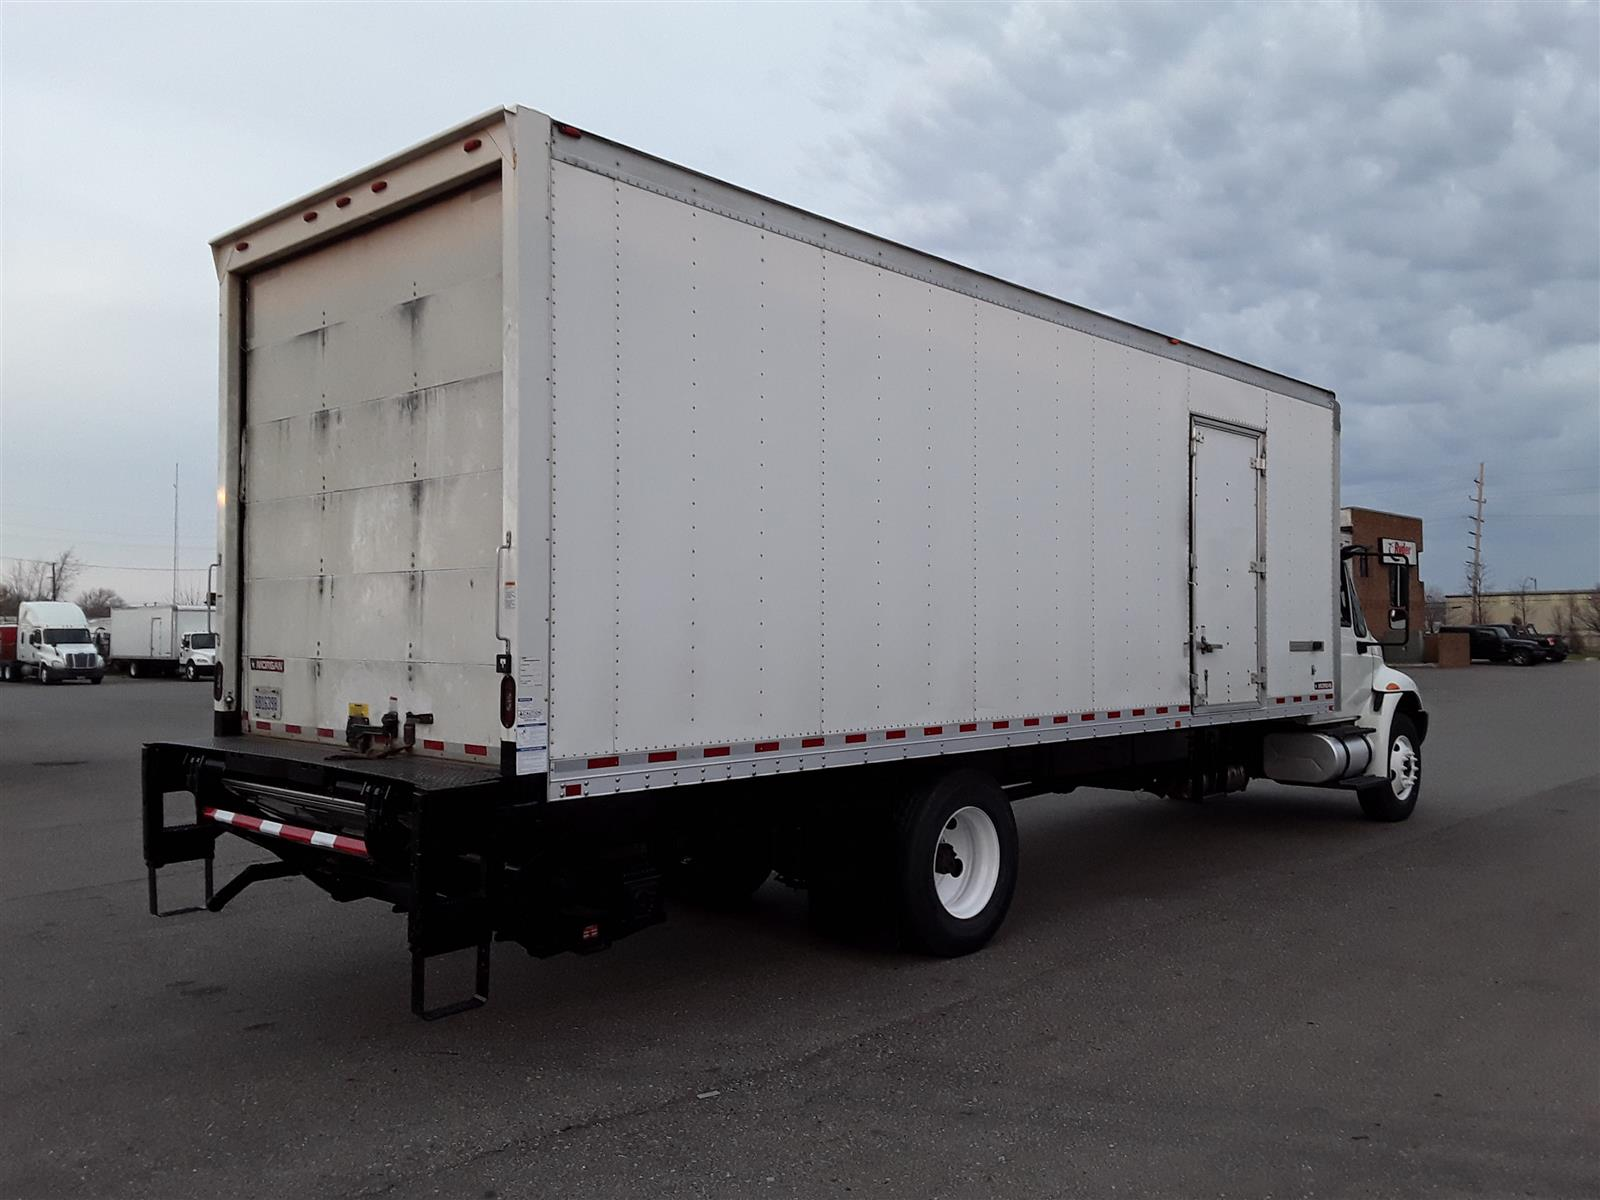 2018 International DuraStar 4300 4x2, Dry Freight #682594 - photo 1